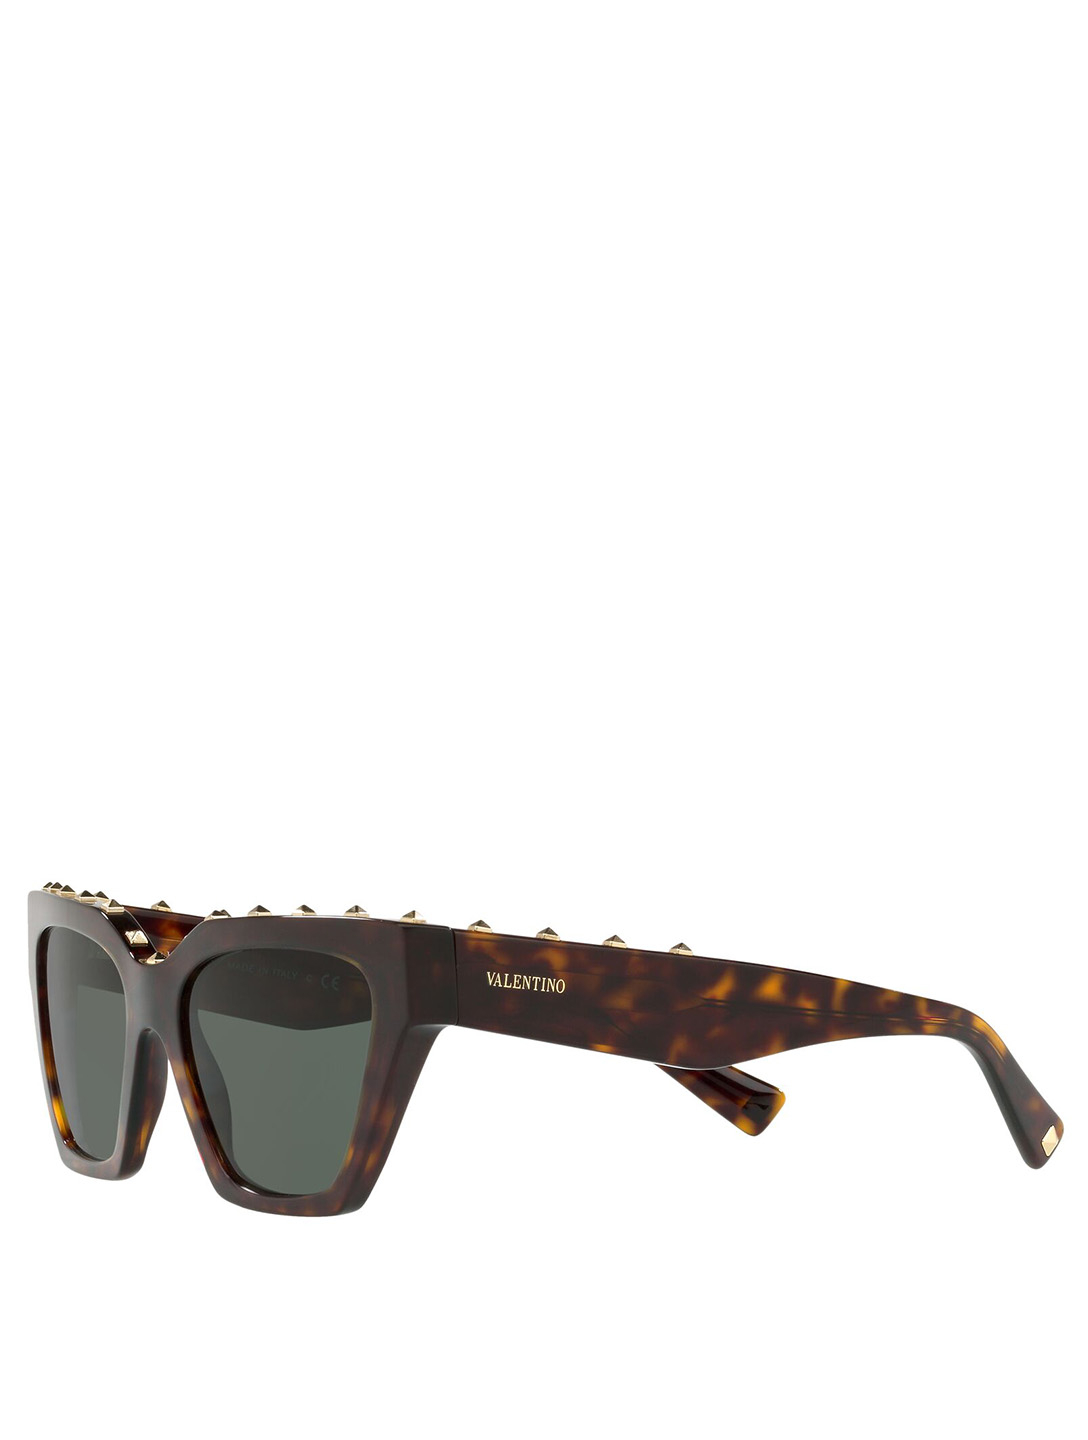 VALENTINO Square Sunglasses With Studs Women's Brown